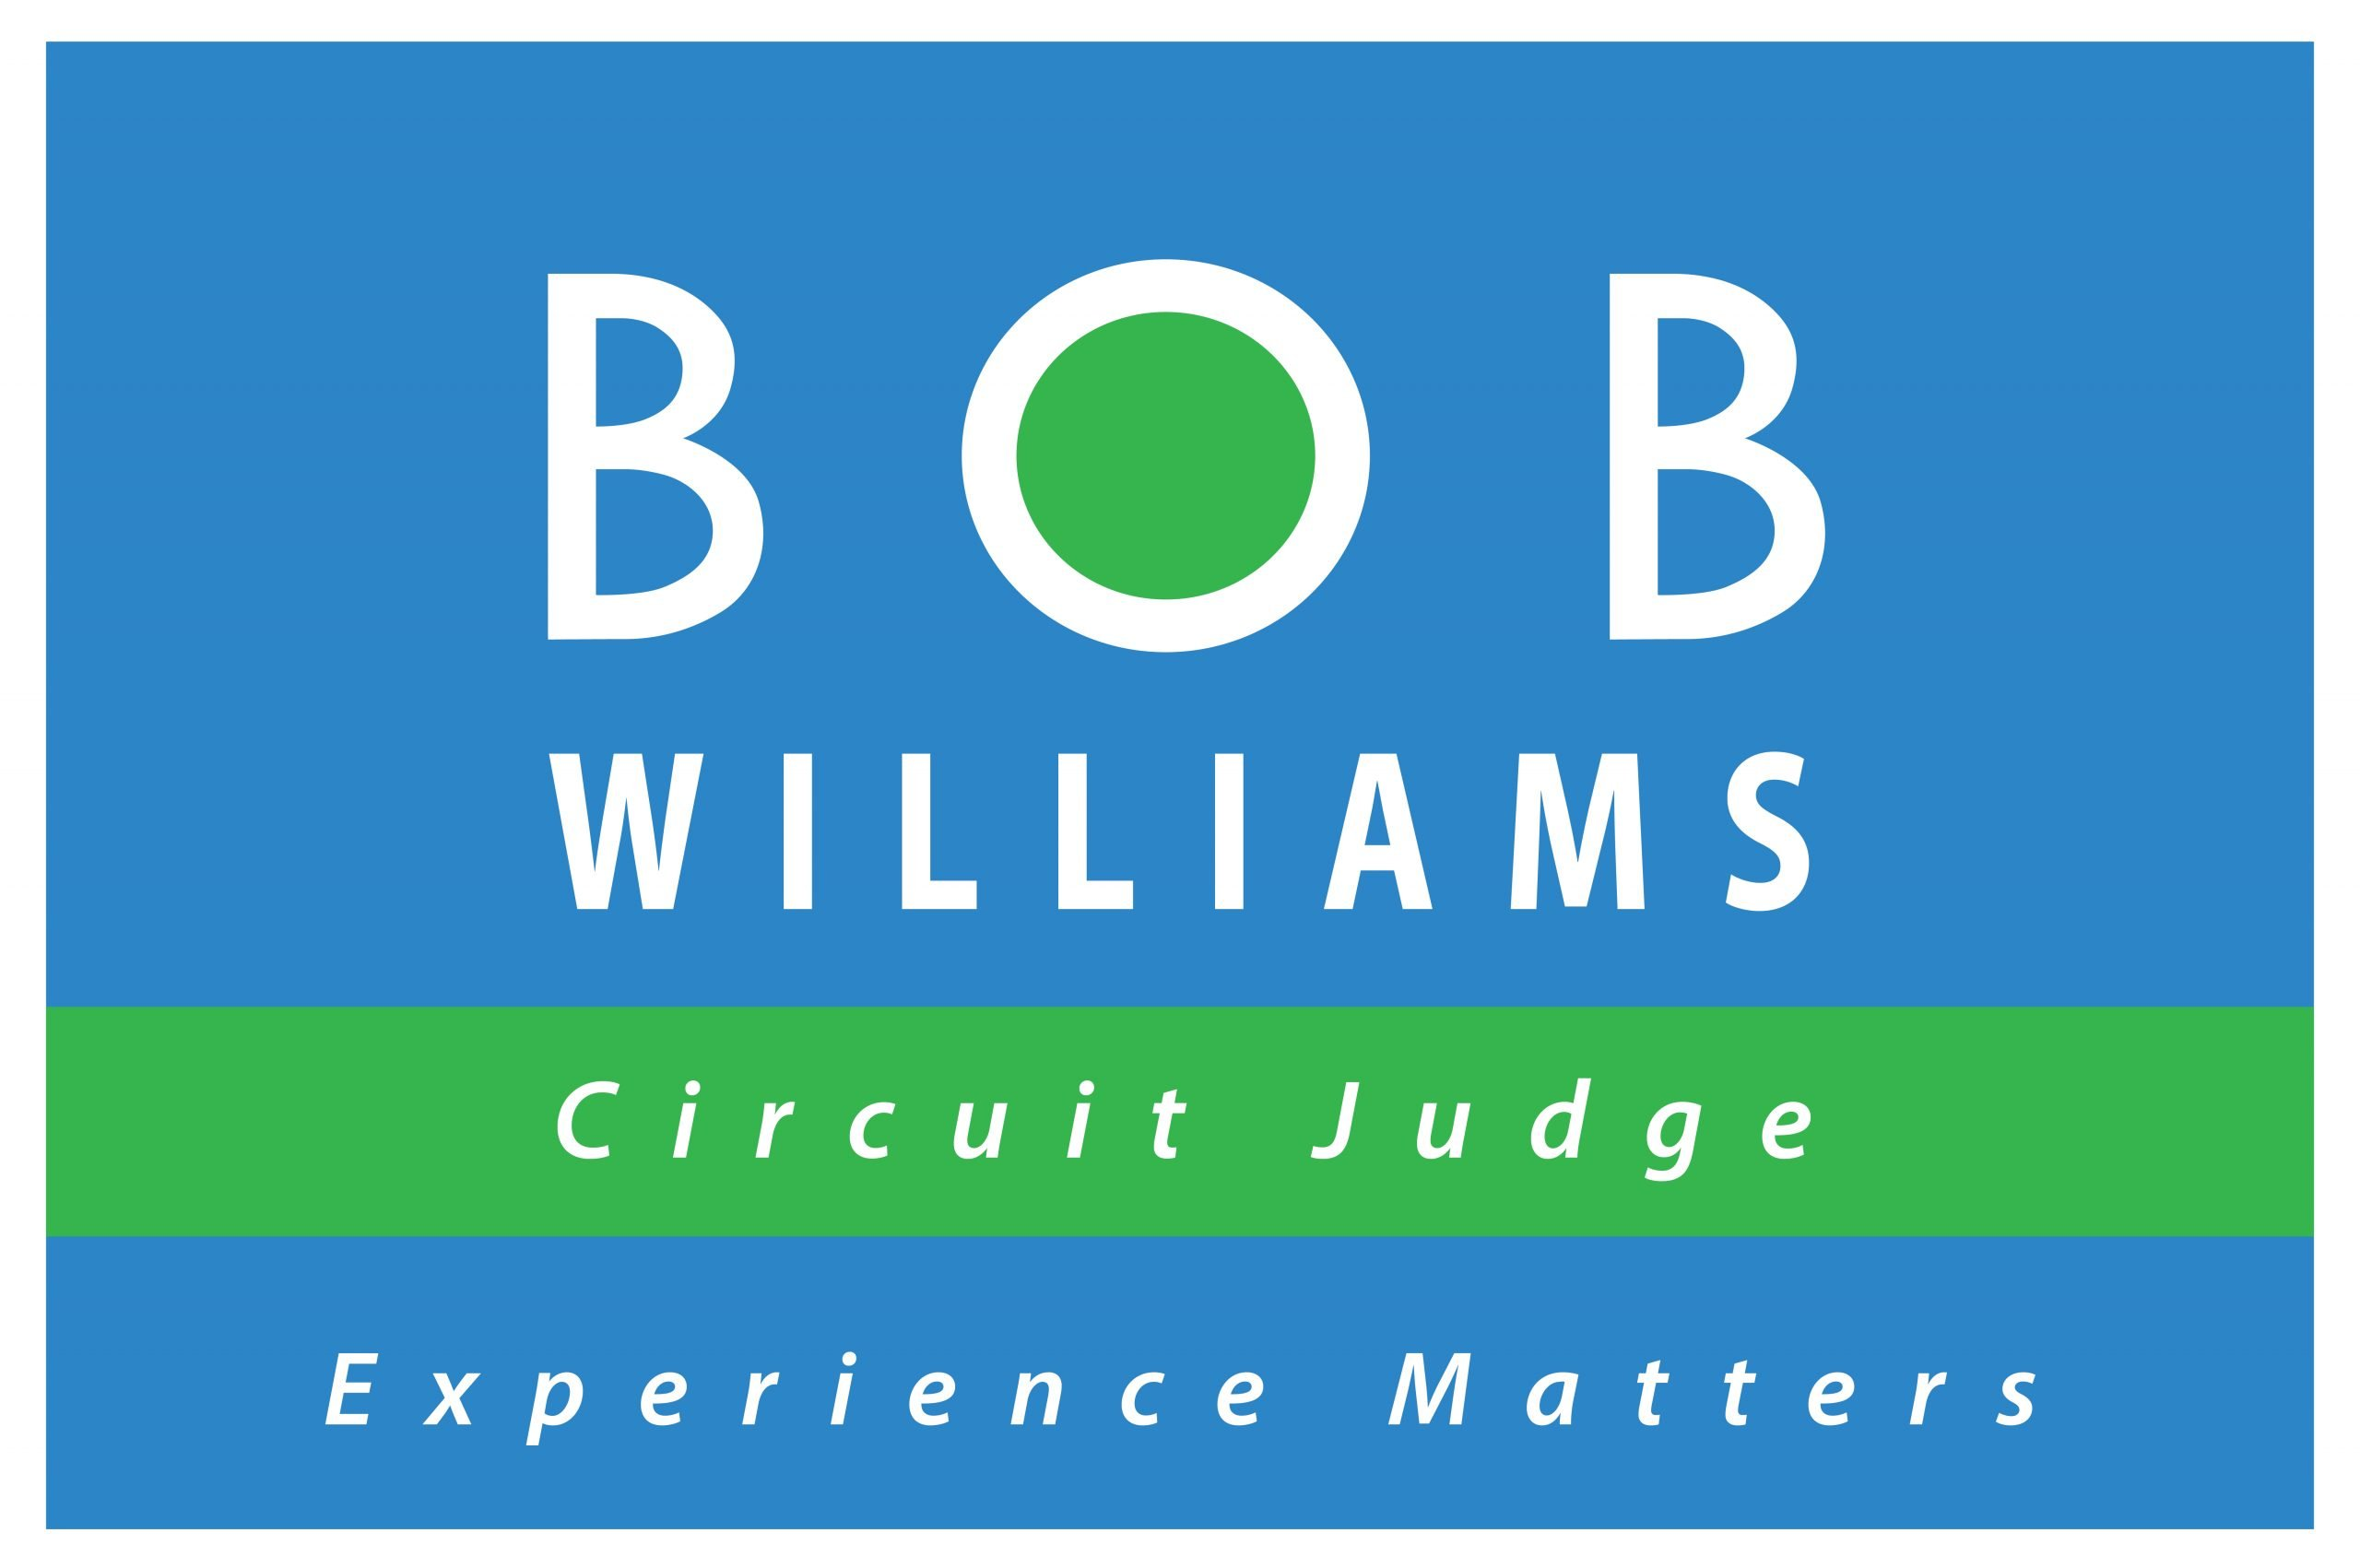 Bob Williams For Circuit Judge Campaign Sign